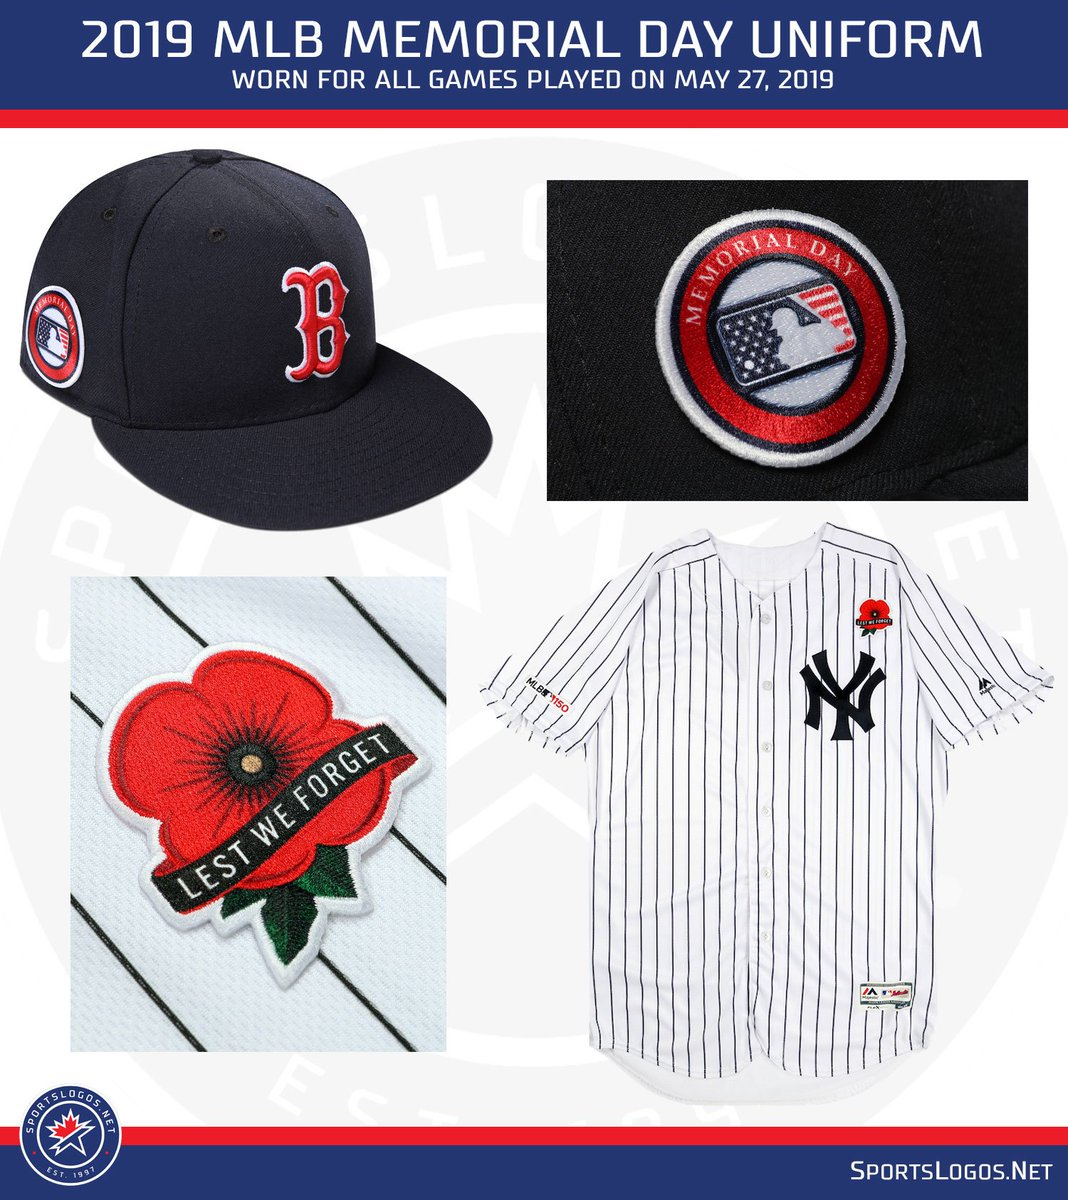 e90b4986a17c More photos and details here  http   news.sportslogos.net 2019 04 12 mlb- unveils-2019-holiday-all-star-caps-and-uniforms  …pic.twitter.com PoWTJFvMz7